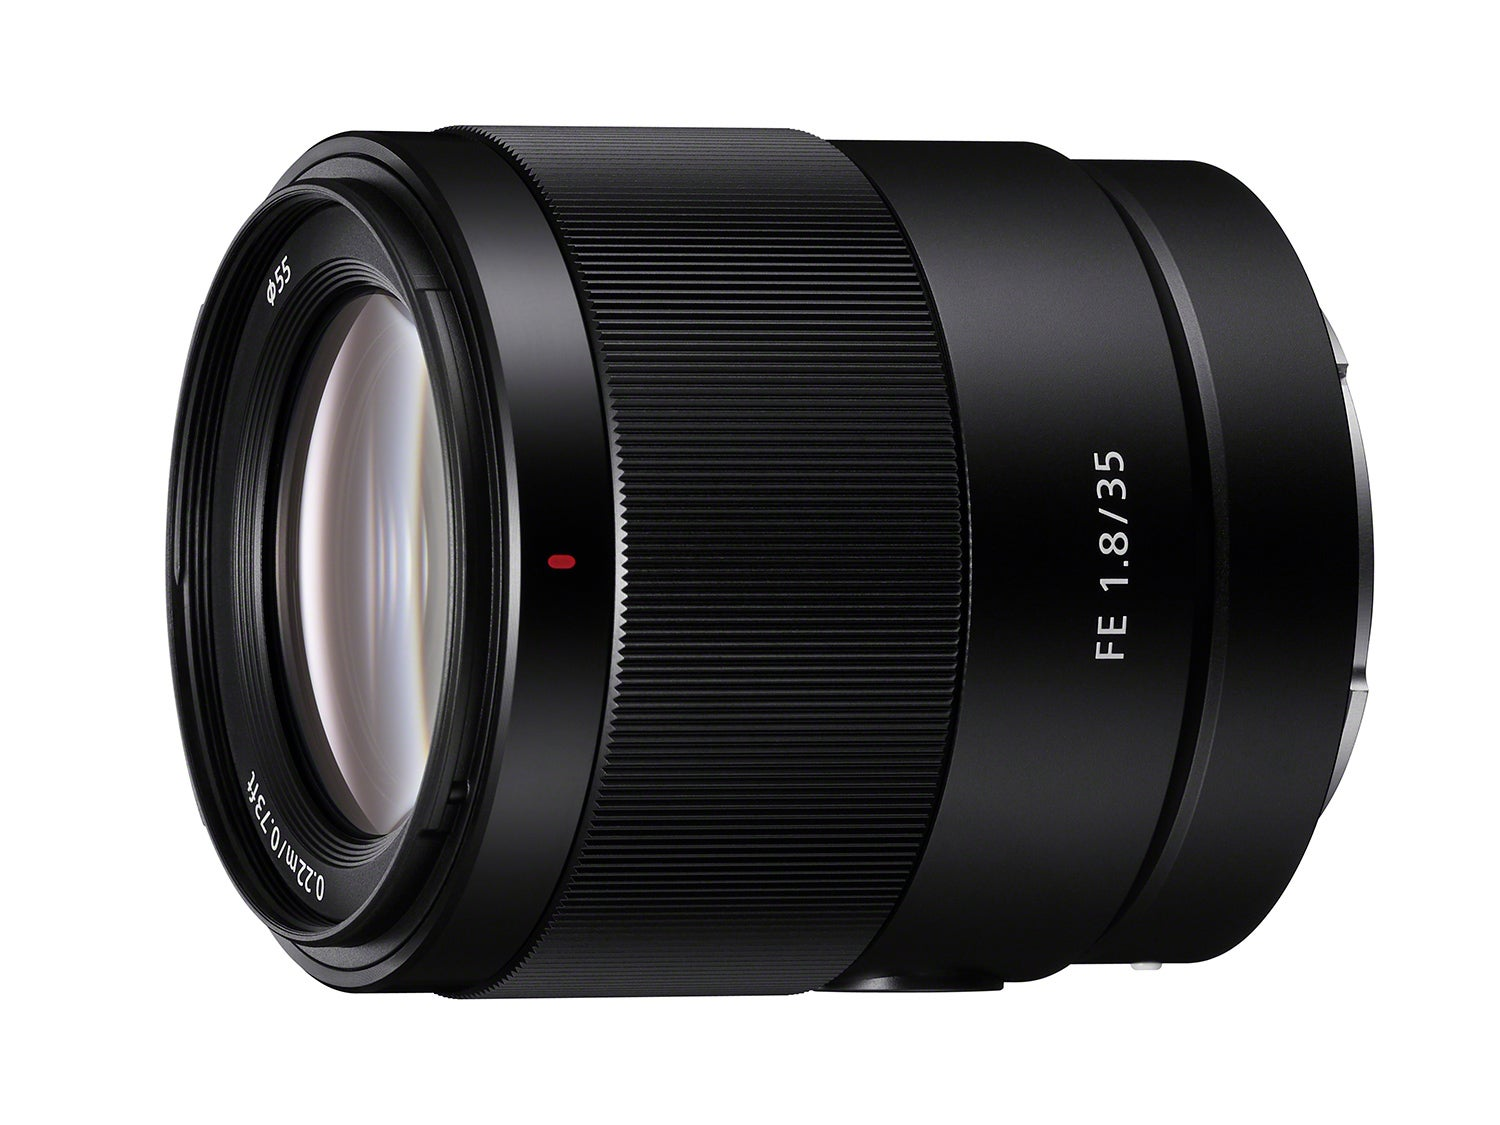 Sony's new FE 35mm F1.8 is a super fast and super light prime lens